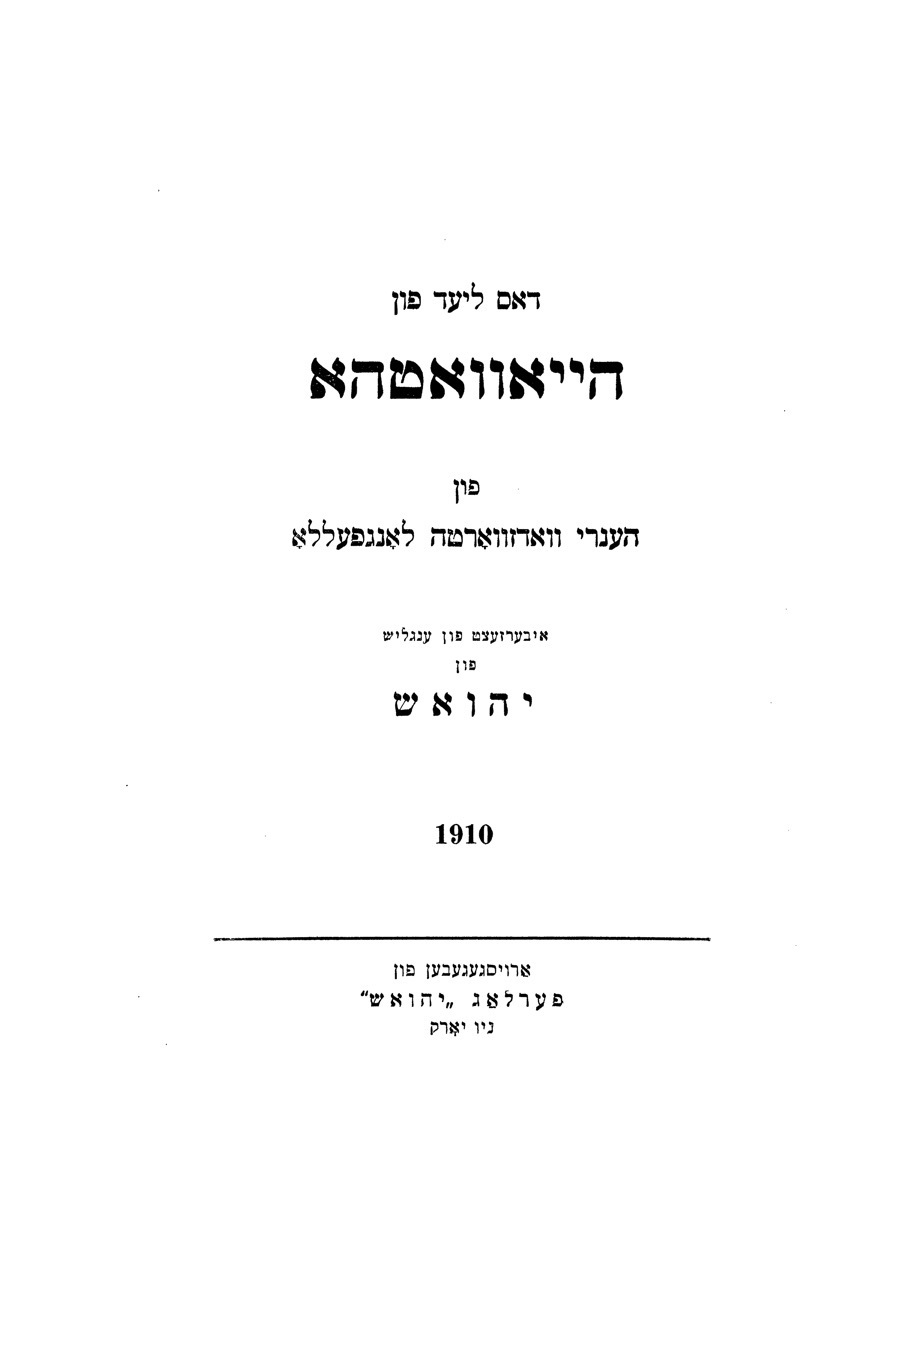 <p>The cover page of Yehoash&#8217;s translation into Yiddish of Longfellow&#8217;s <em>Hiawatha </em>(1910).</p>